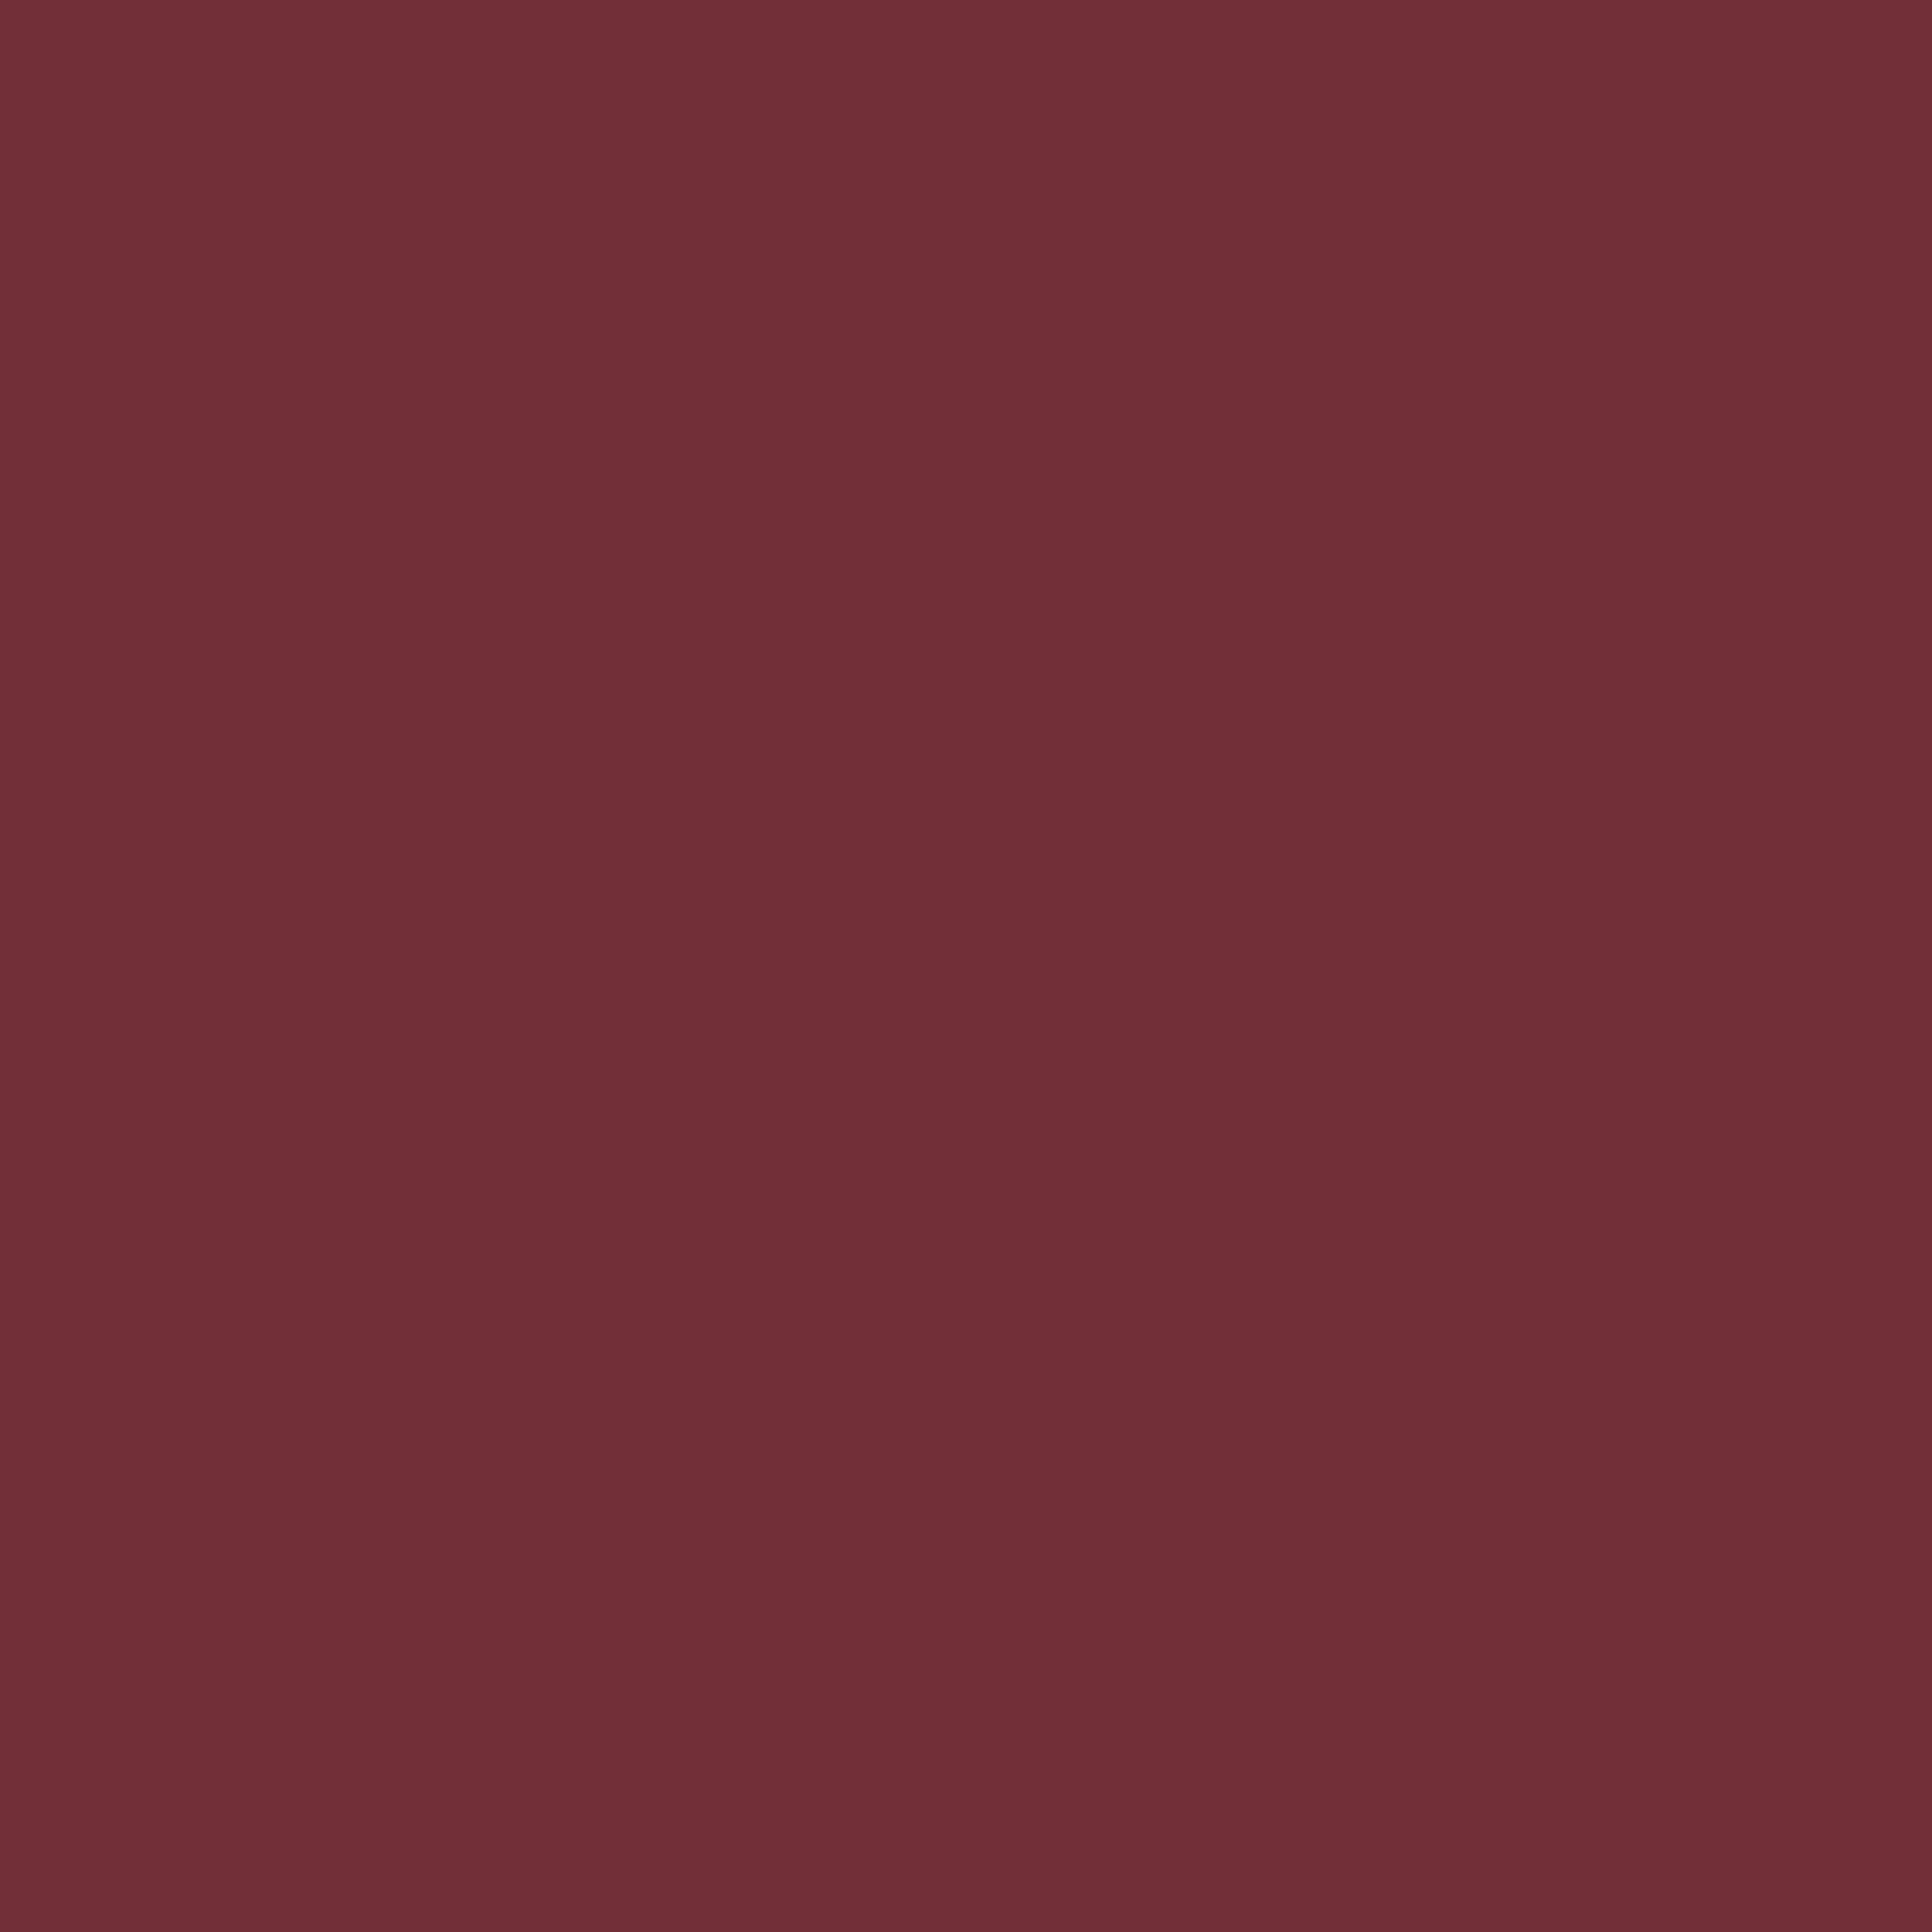 2048x2048 Wine Solid Color Background